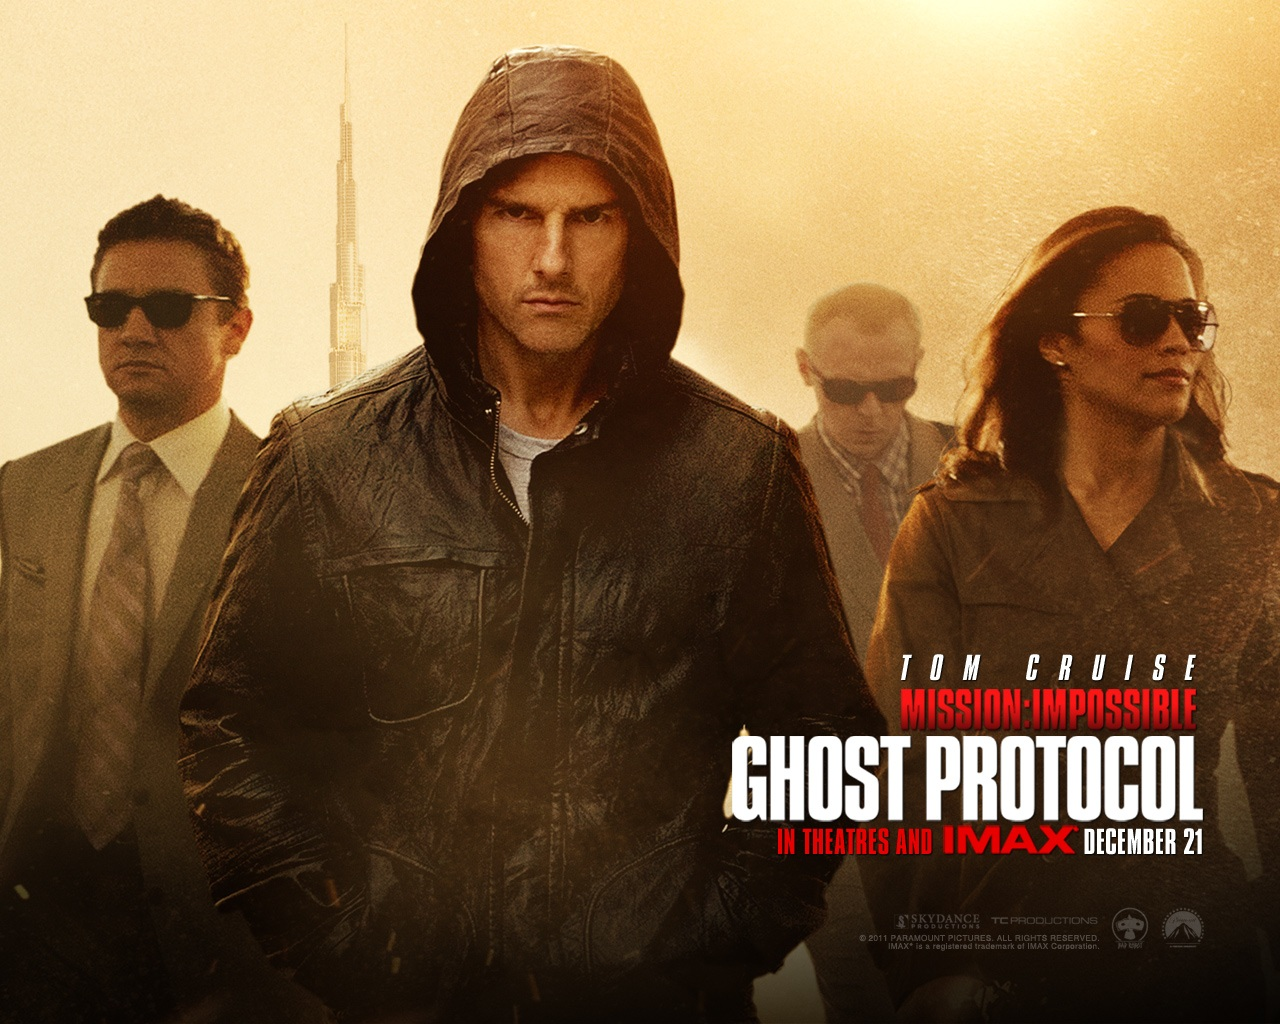 http://3.bp.blogspot.com/-kFWU4utQEAU/T-coQnWOk0I/AAAAAAAAAqI/jwq6AR74ggw/s1600/Tom_Cruise_in_Mission+_Impossible_-_Ghost_Protocol_Wallpaper_1_800.jpg